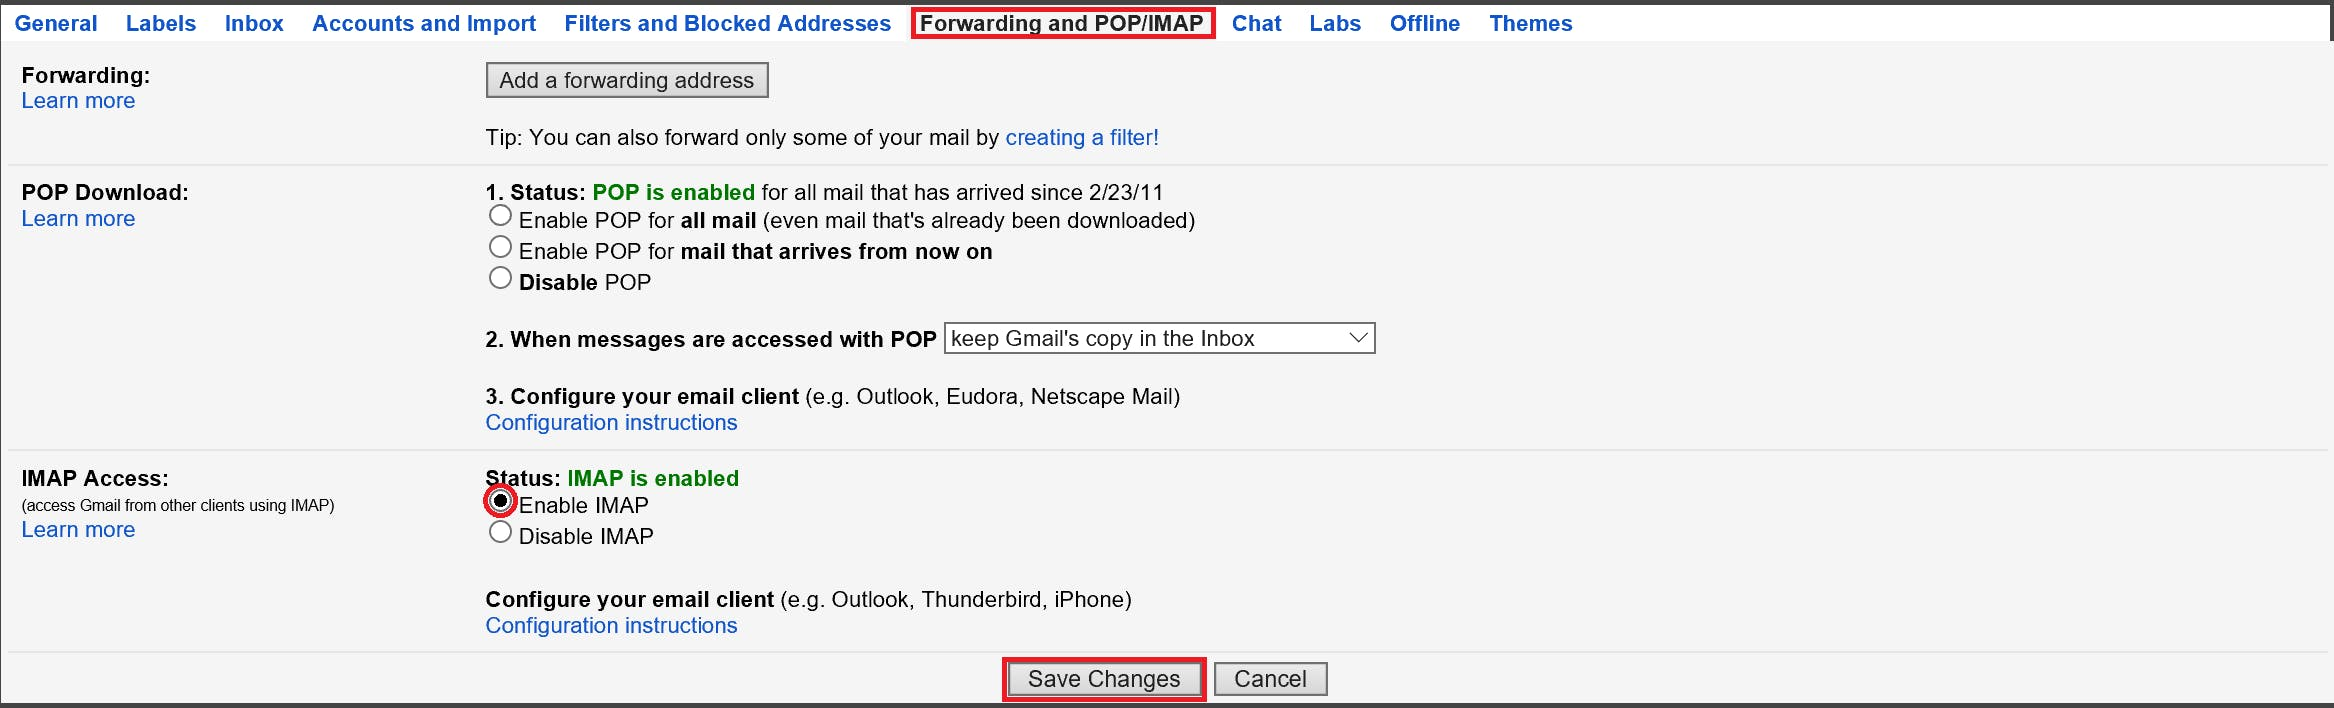 Go to Settings>Forwarding and POP/IMAP enable IMAP and Save Changes